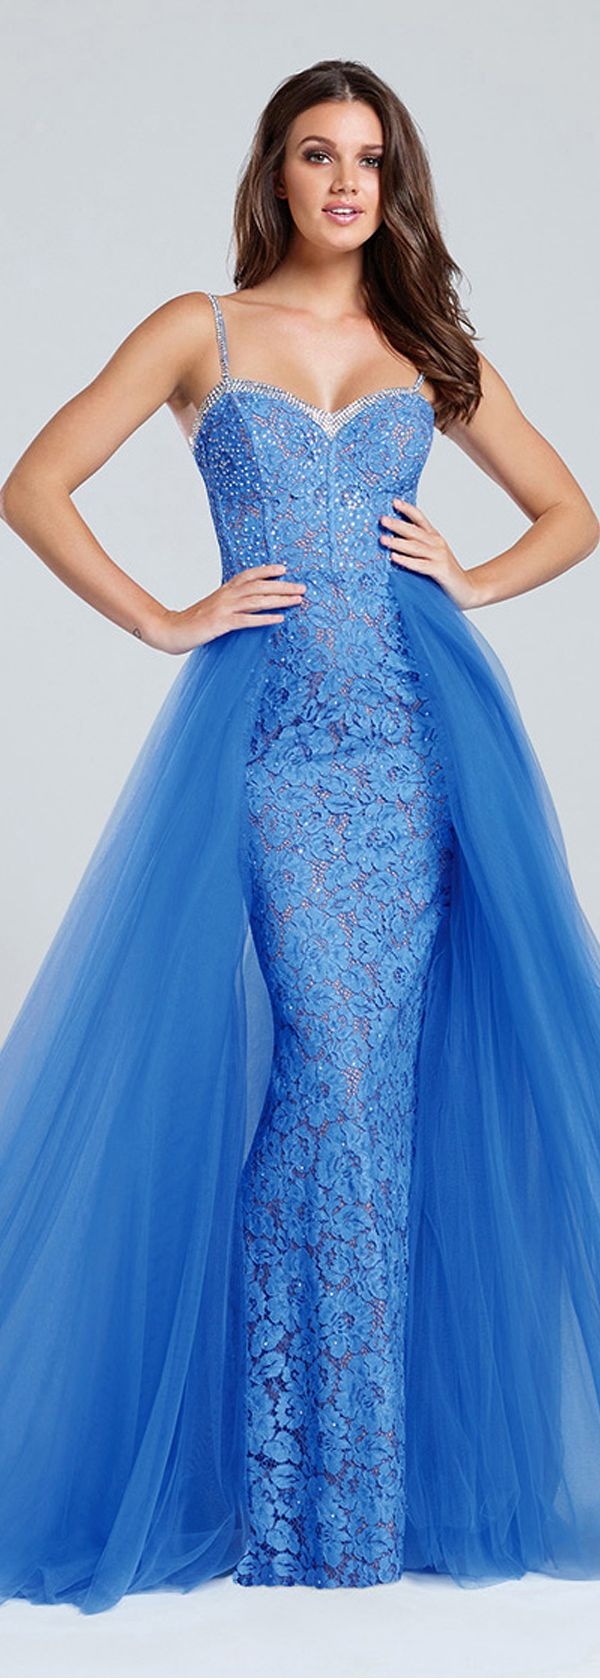 Glamorous Tulle & Lace Spaghetti Straps Neckline A-Line Evening Dresses With Hot Fix Rhinestone